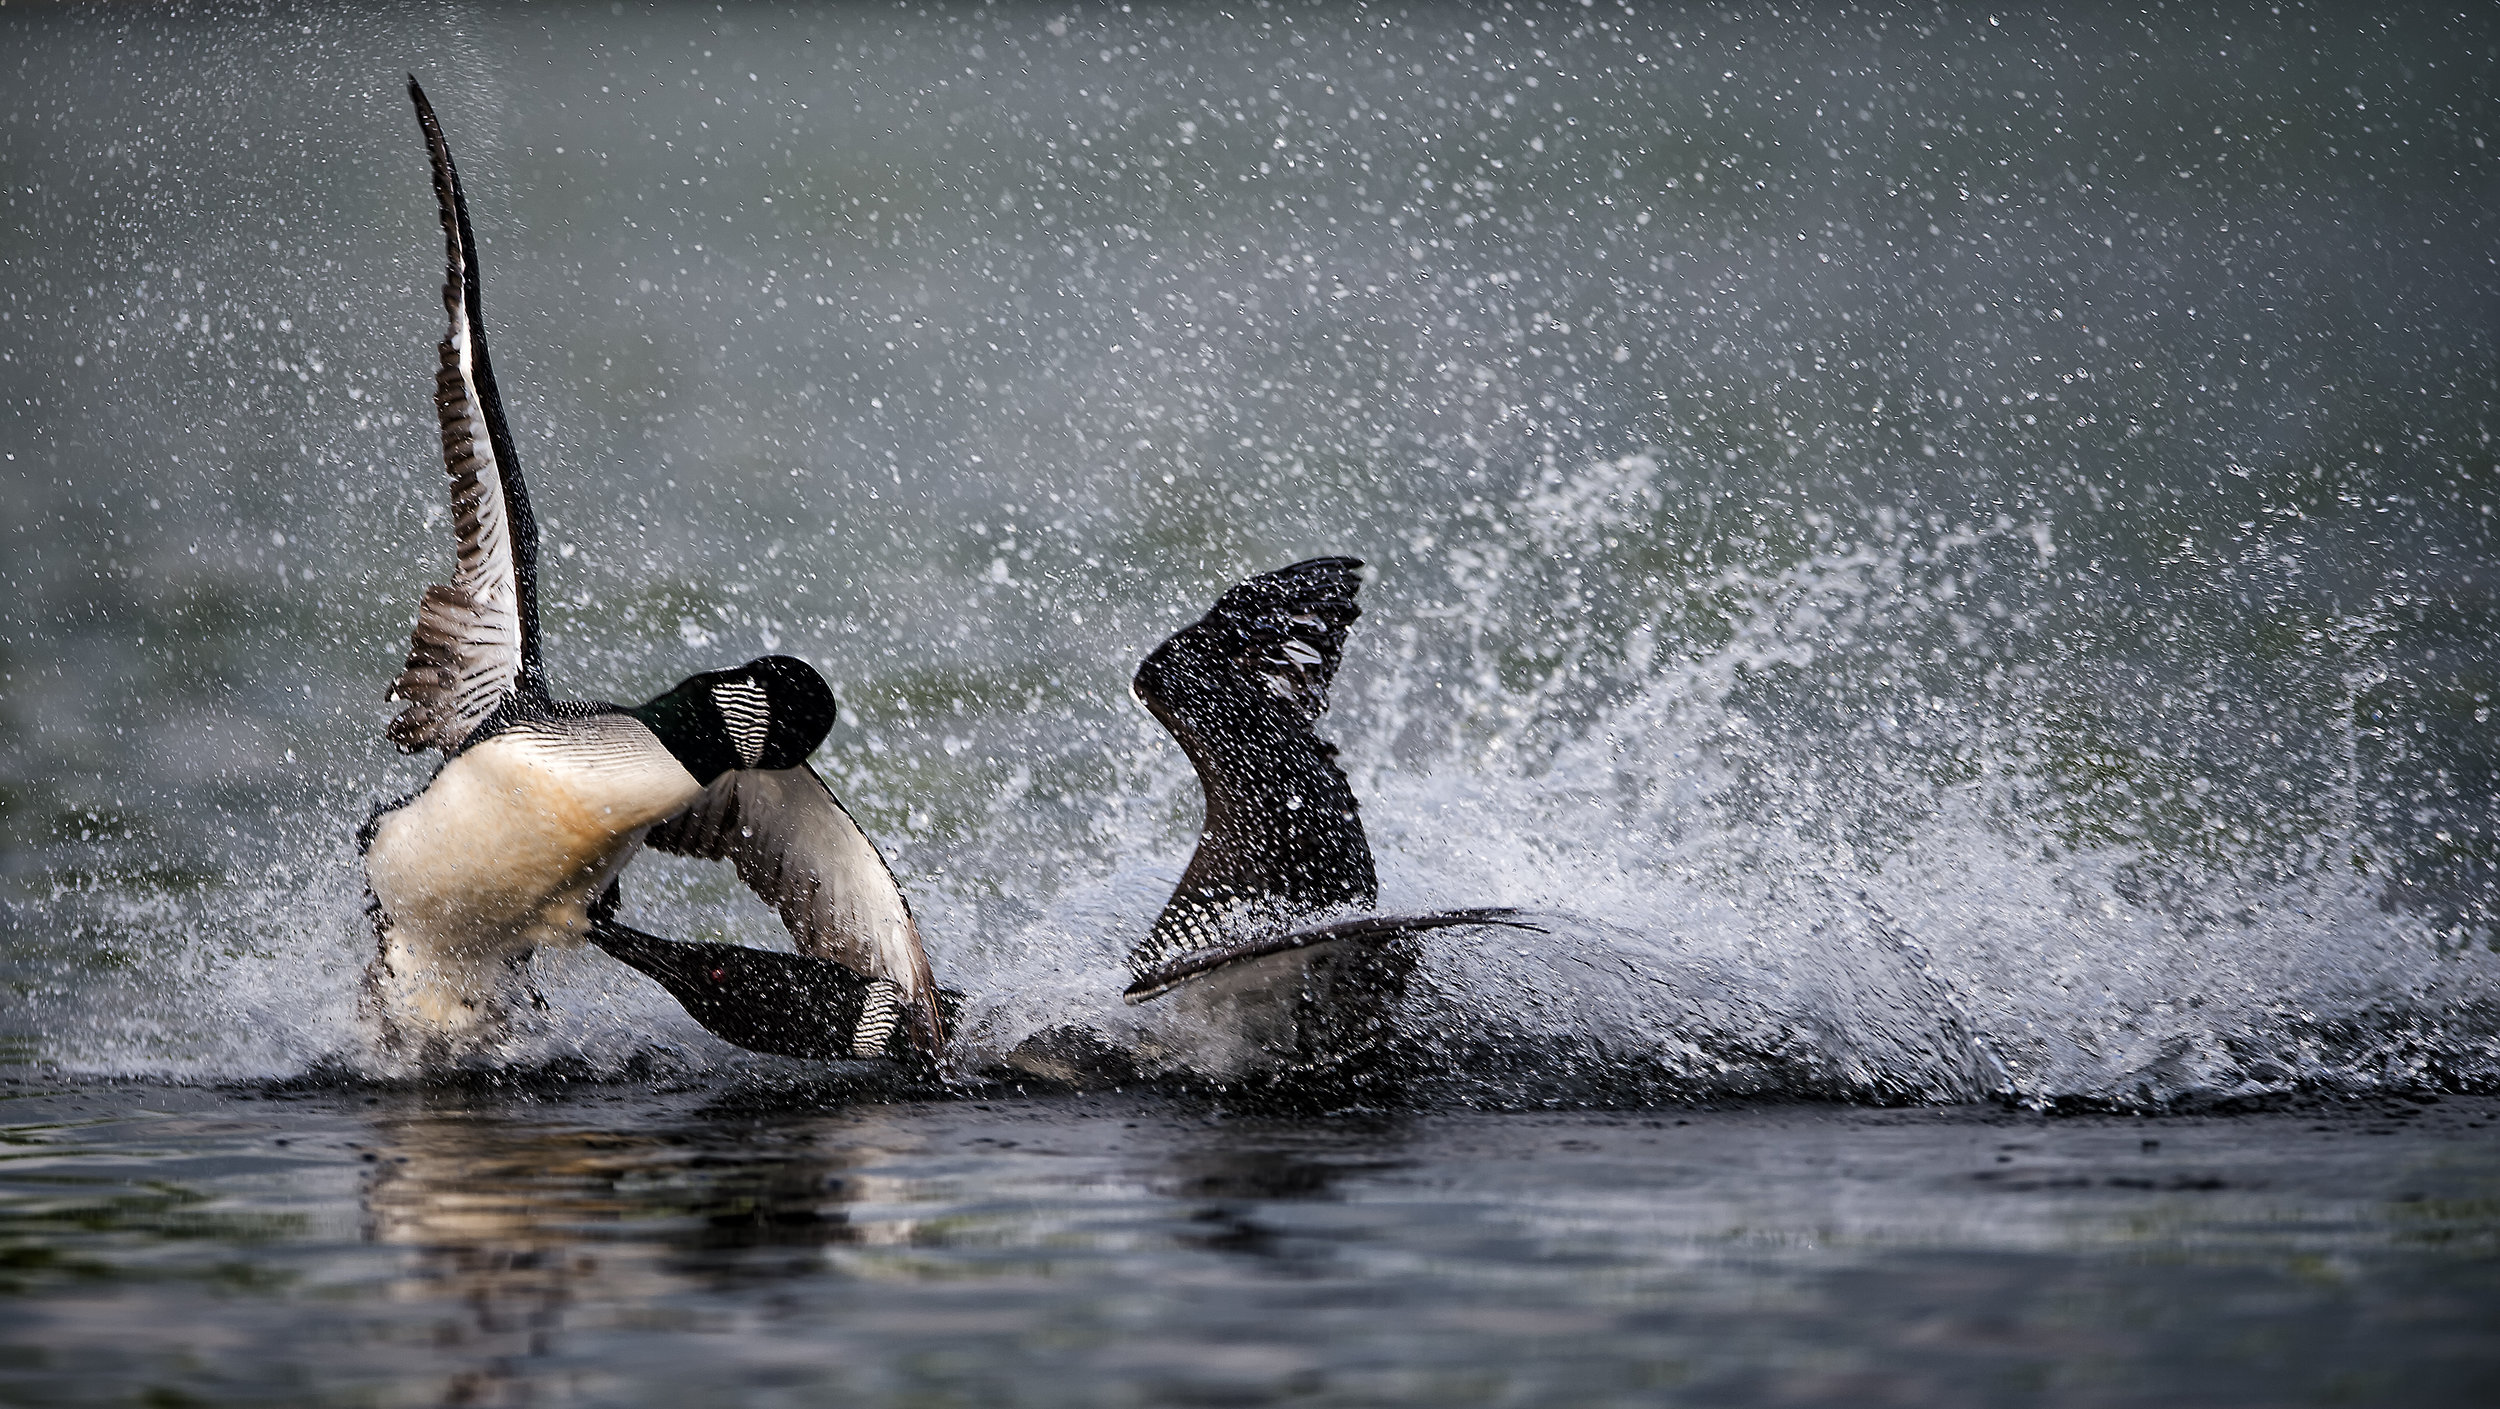 Common loon action photo tours